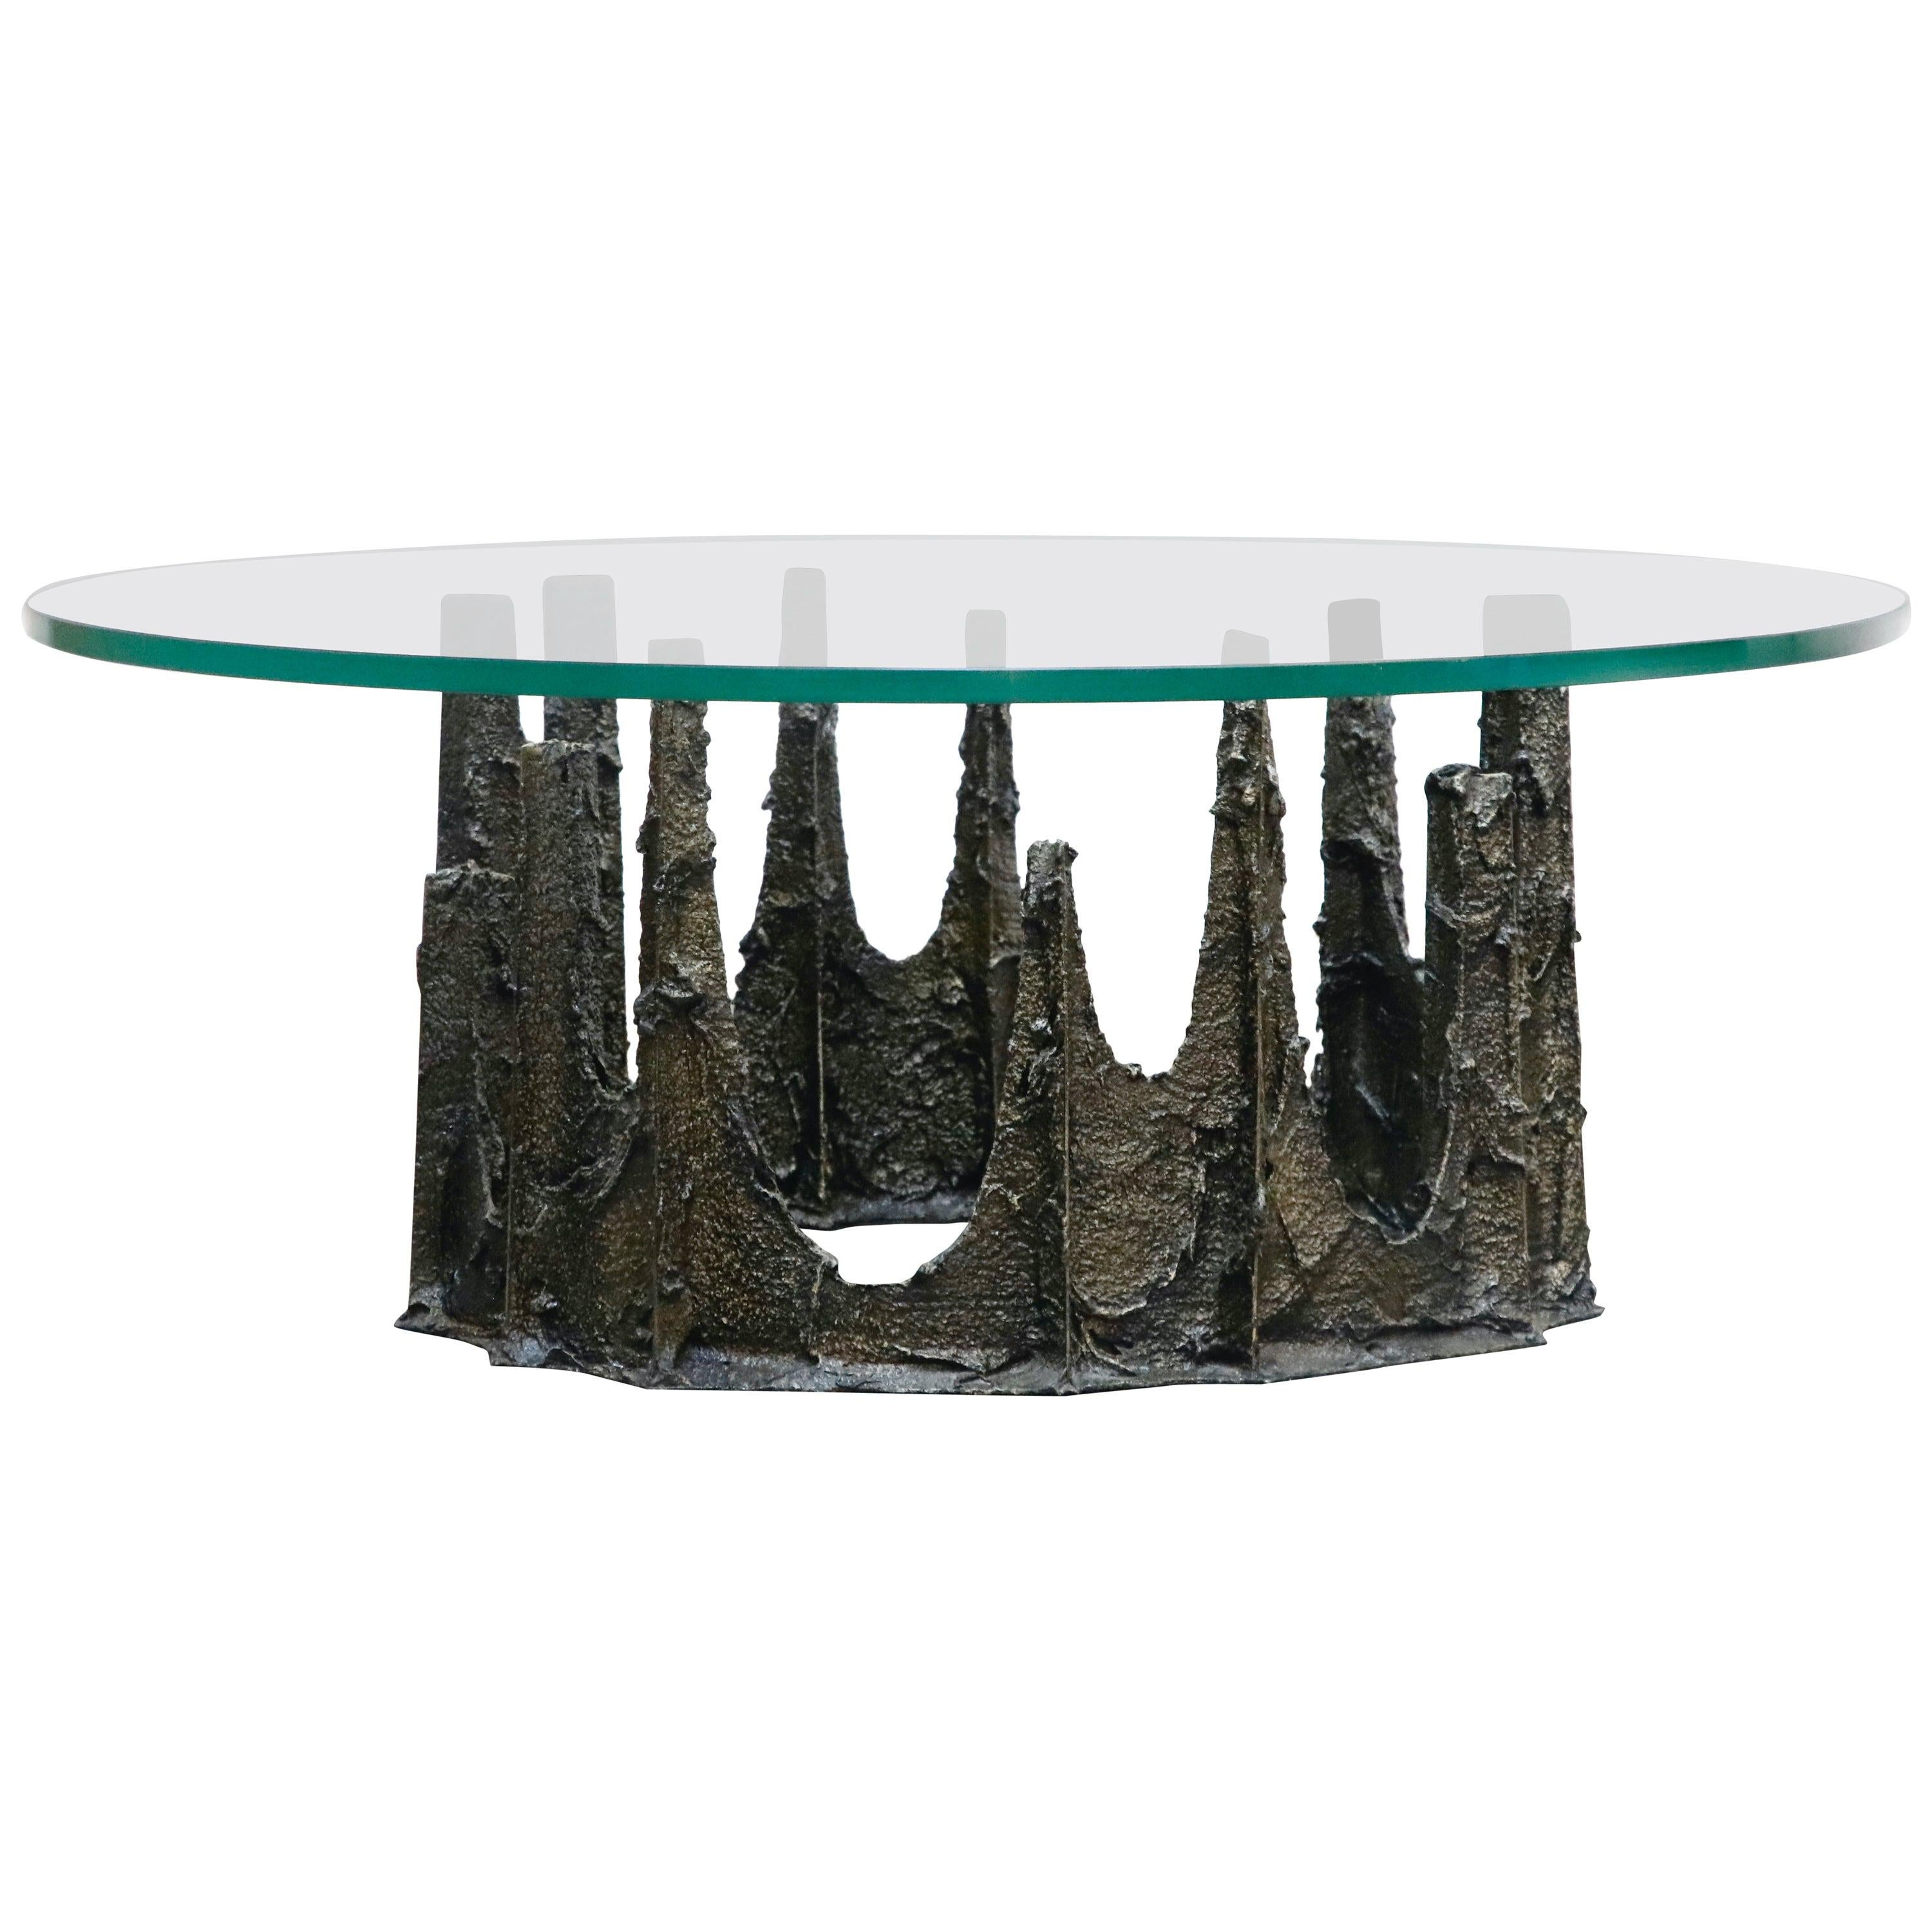 Paul Evans Sculpted Bronze Stalagmite Coffee Table, Signed and Dated 1979